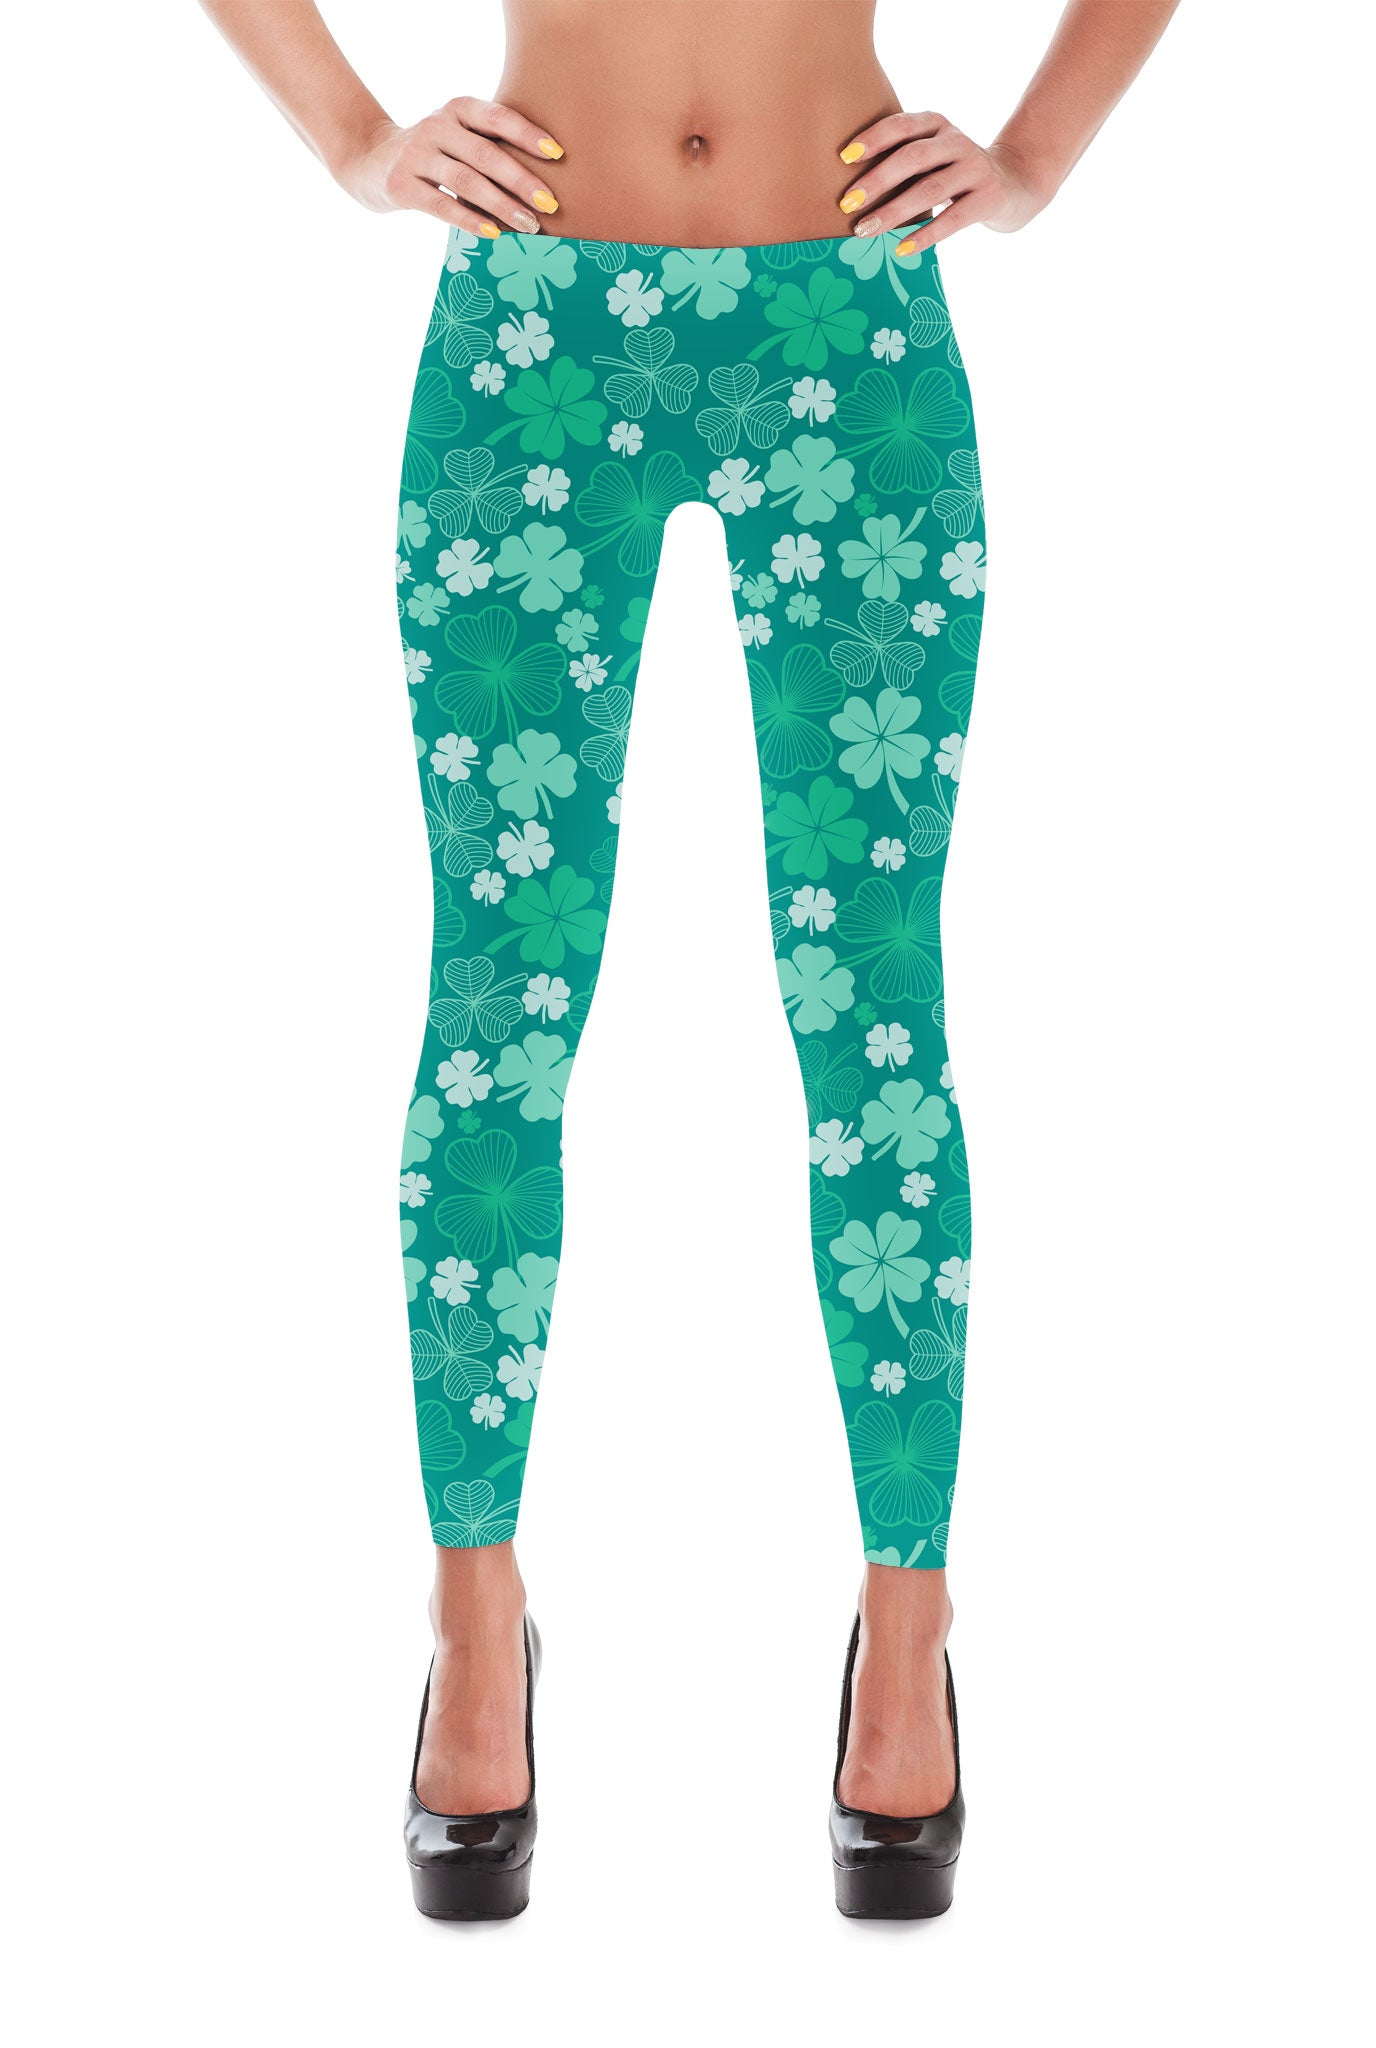 Clover Leggings - PAT-76